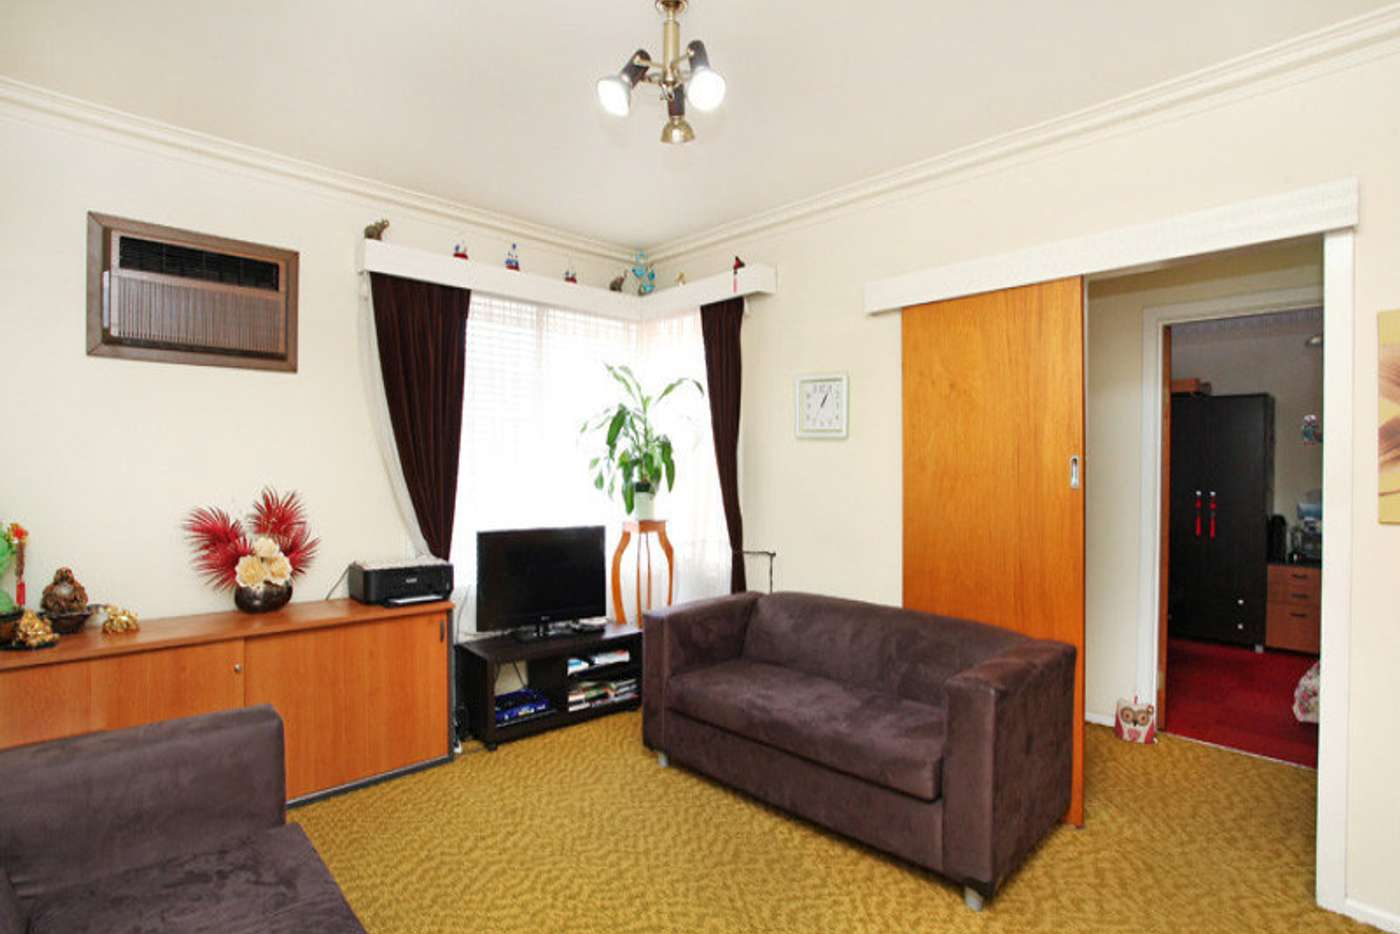 Fifth view of Homely unit listing, 2/19 Elphinstone Street, West Footscray VIC 3012